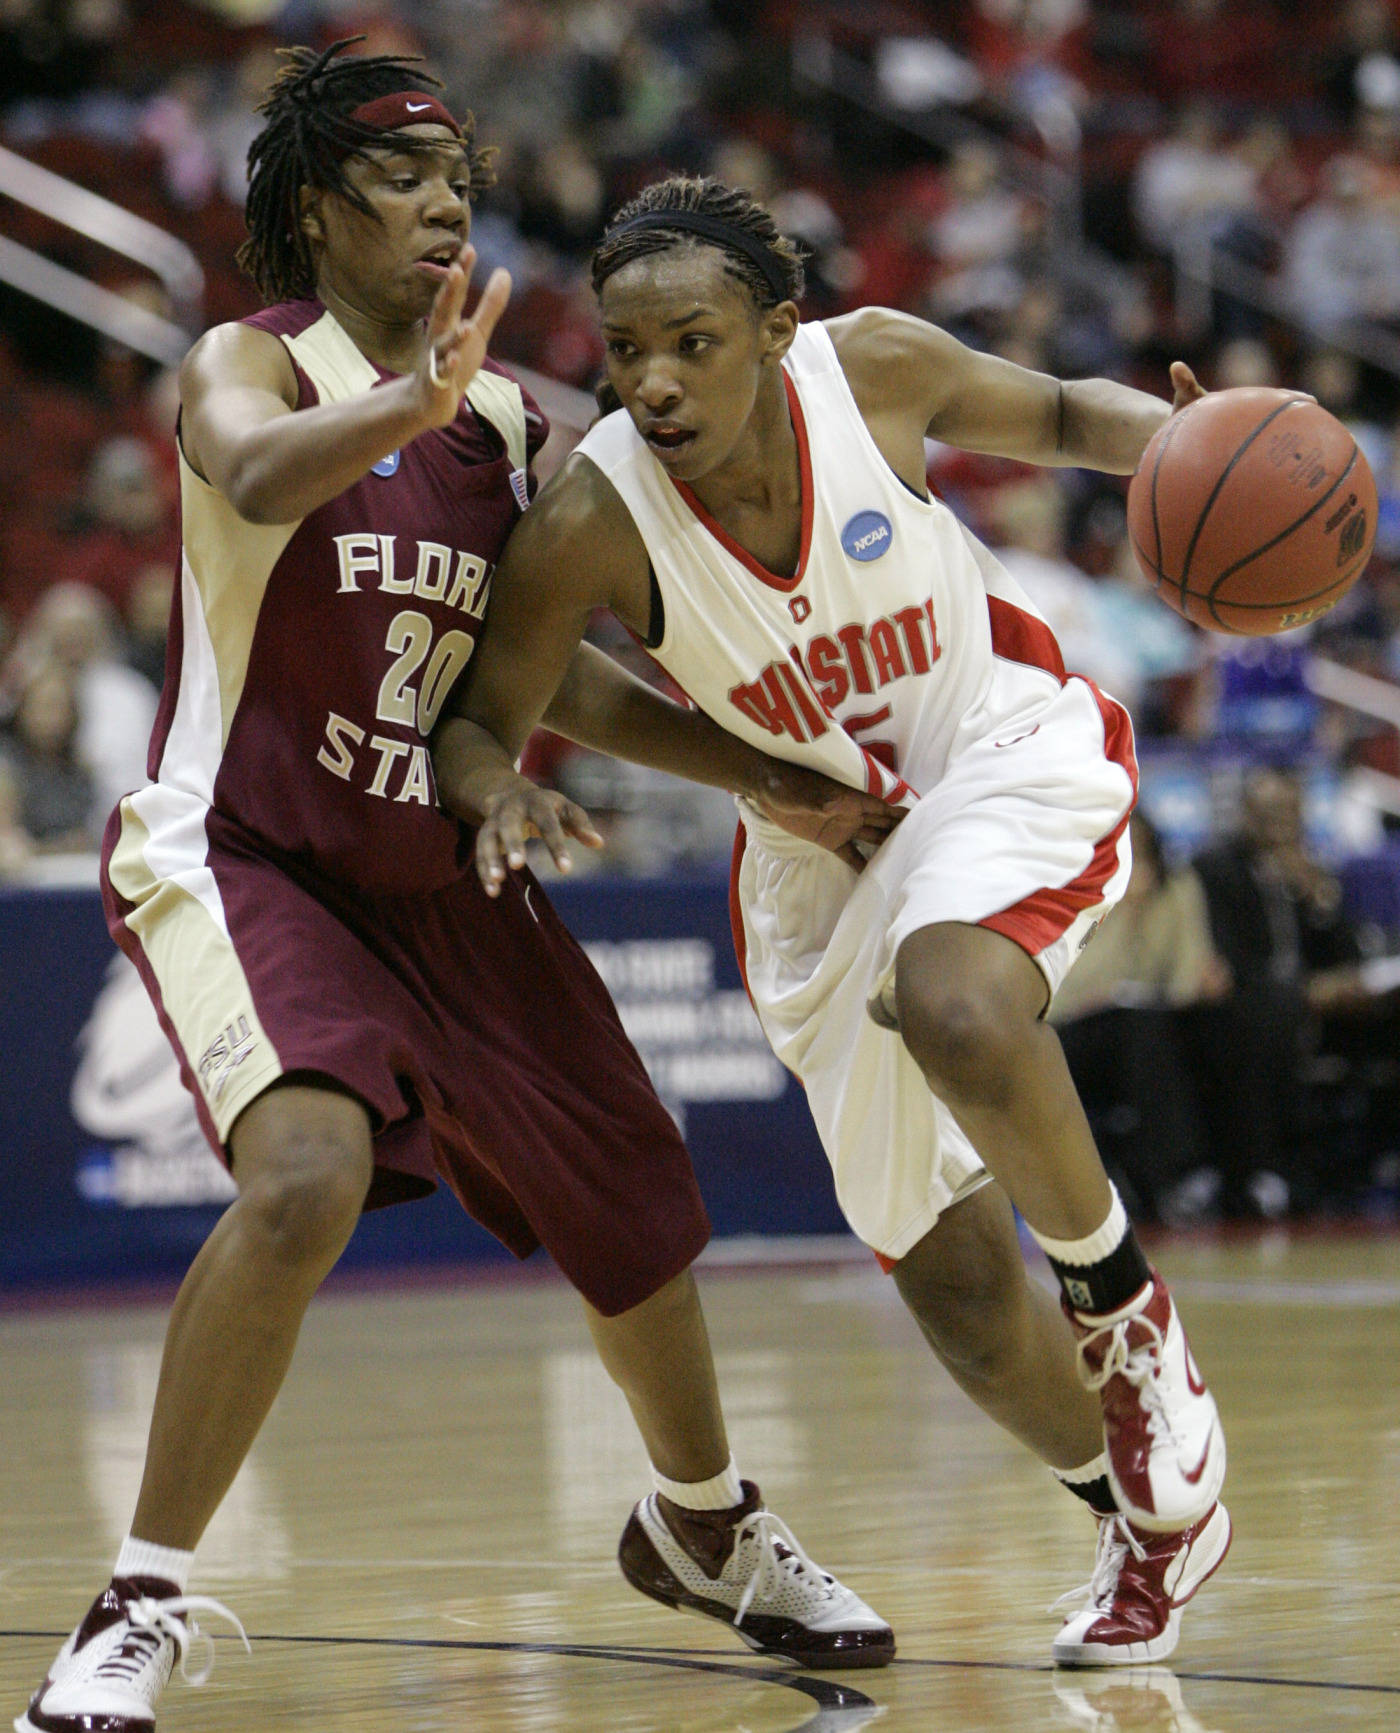 Ohio State's Tamarah Riley is fouled by Florida State's Tanae Davis-Cain during the first half. (AP Photo/Charlie Neibergall)